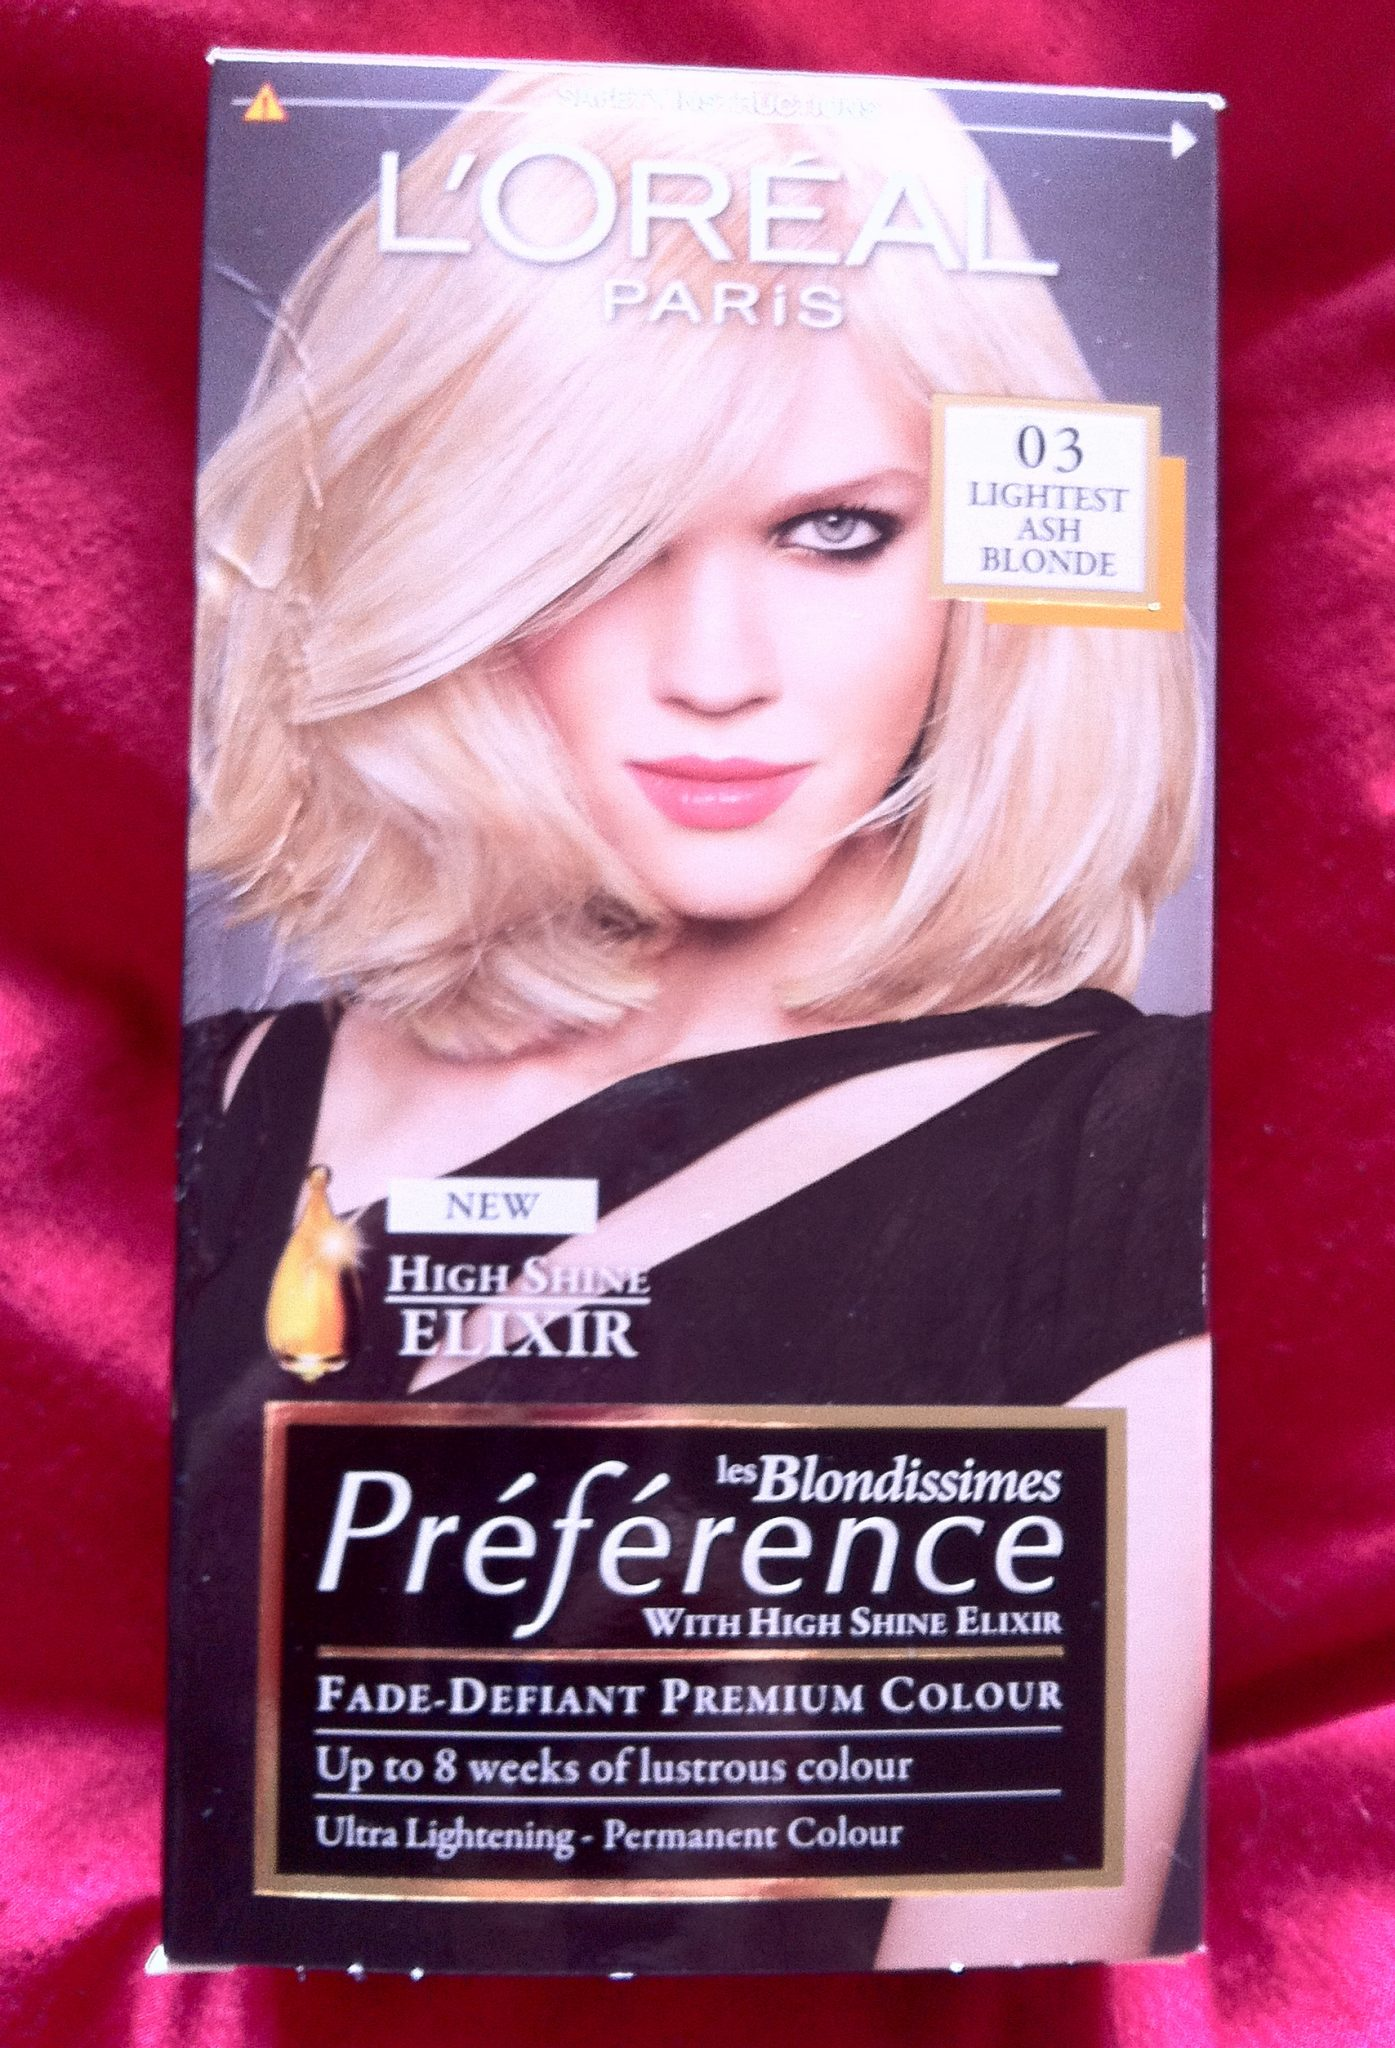 Oreal Preference Blonde Review